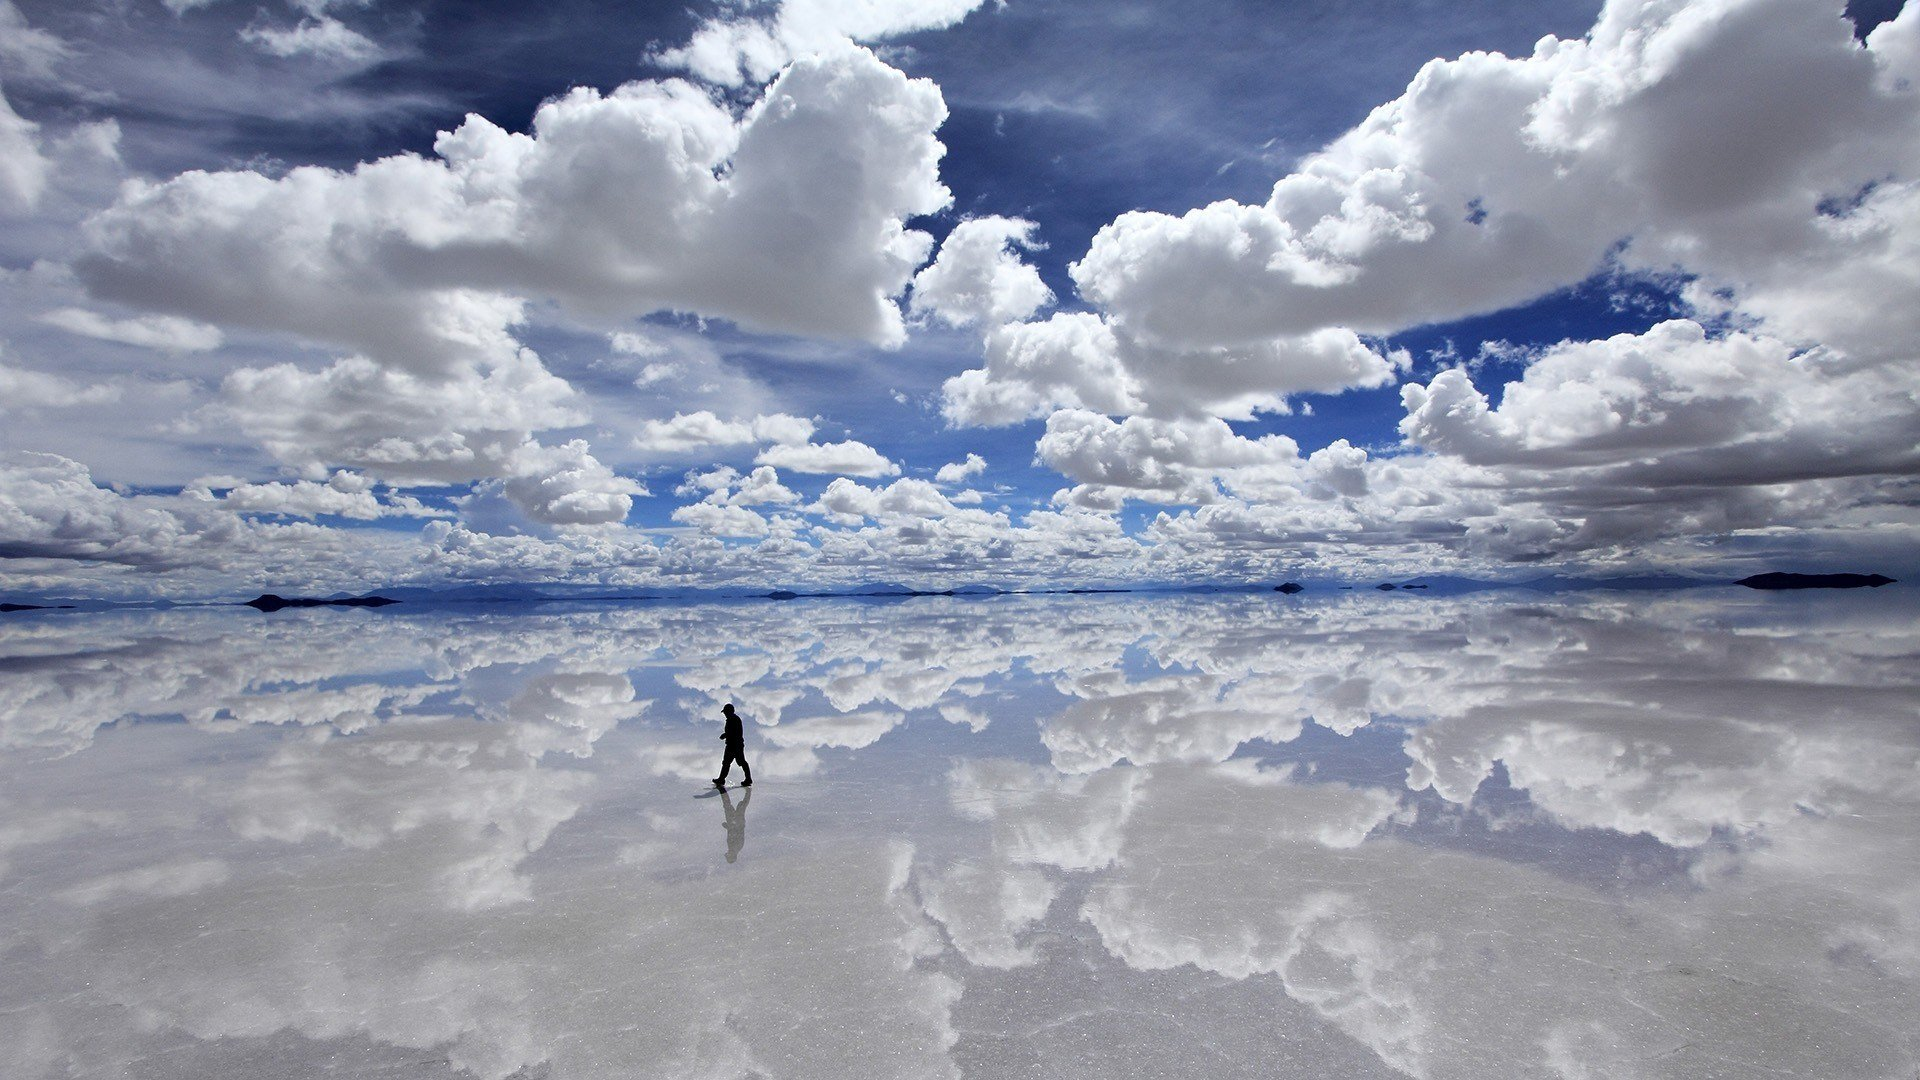 Clouds bolivia bright reflections sillhou wallpaper 1920x1080 1920x1080